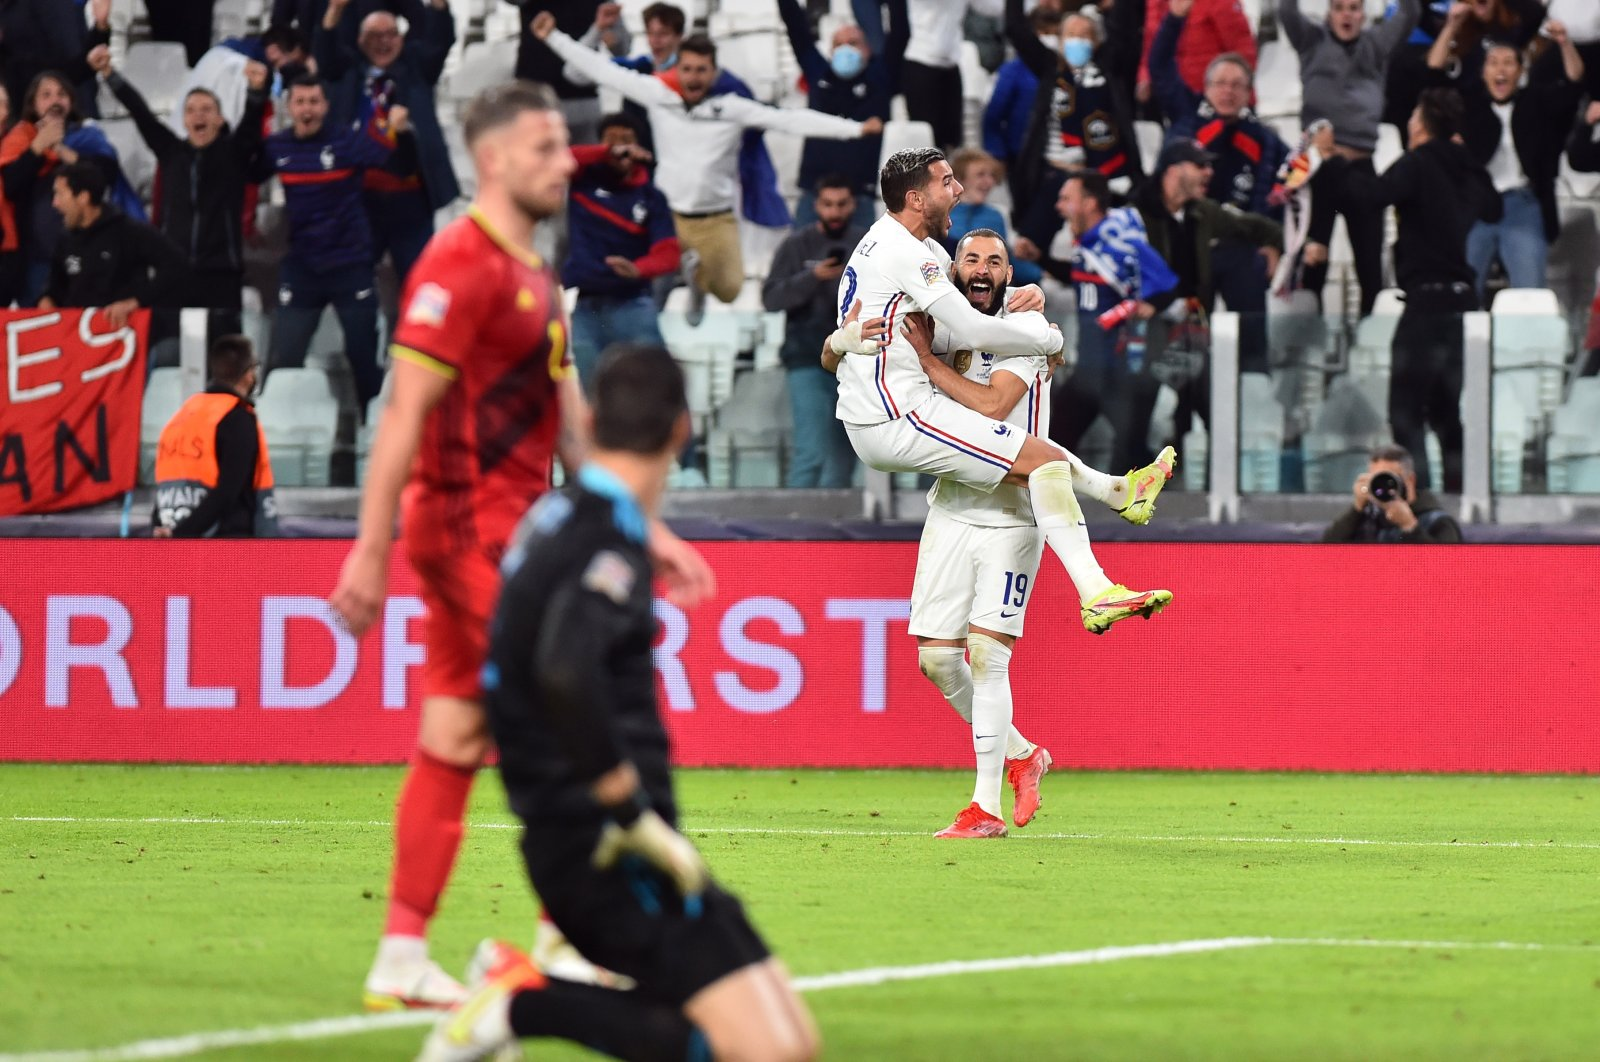 France's Karim Benzema (R) and Theo Hernandez celebrate their team's third goal during a Nations League match against Belgium at the Allianz Stadium, in Turin, Italy, Oct. 7, 2021. (Reuters Photo)